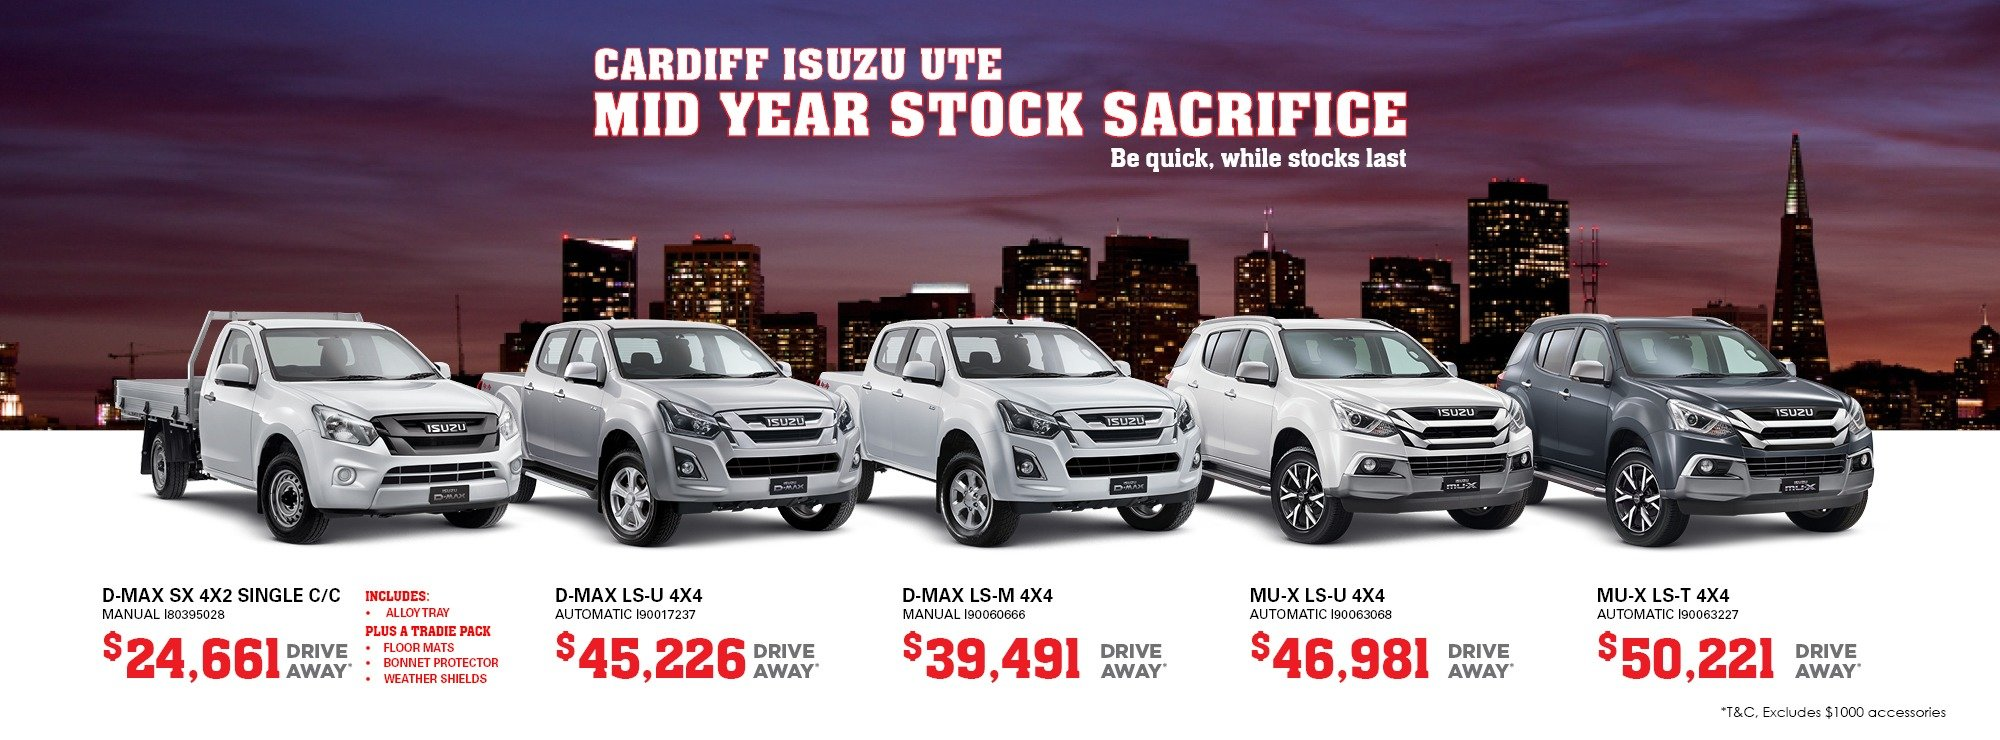 Cardiff Isuzu Ute remaining EOFY stock